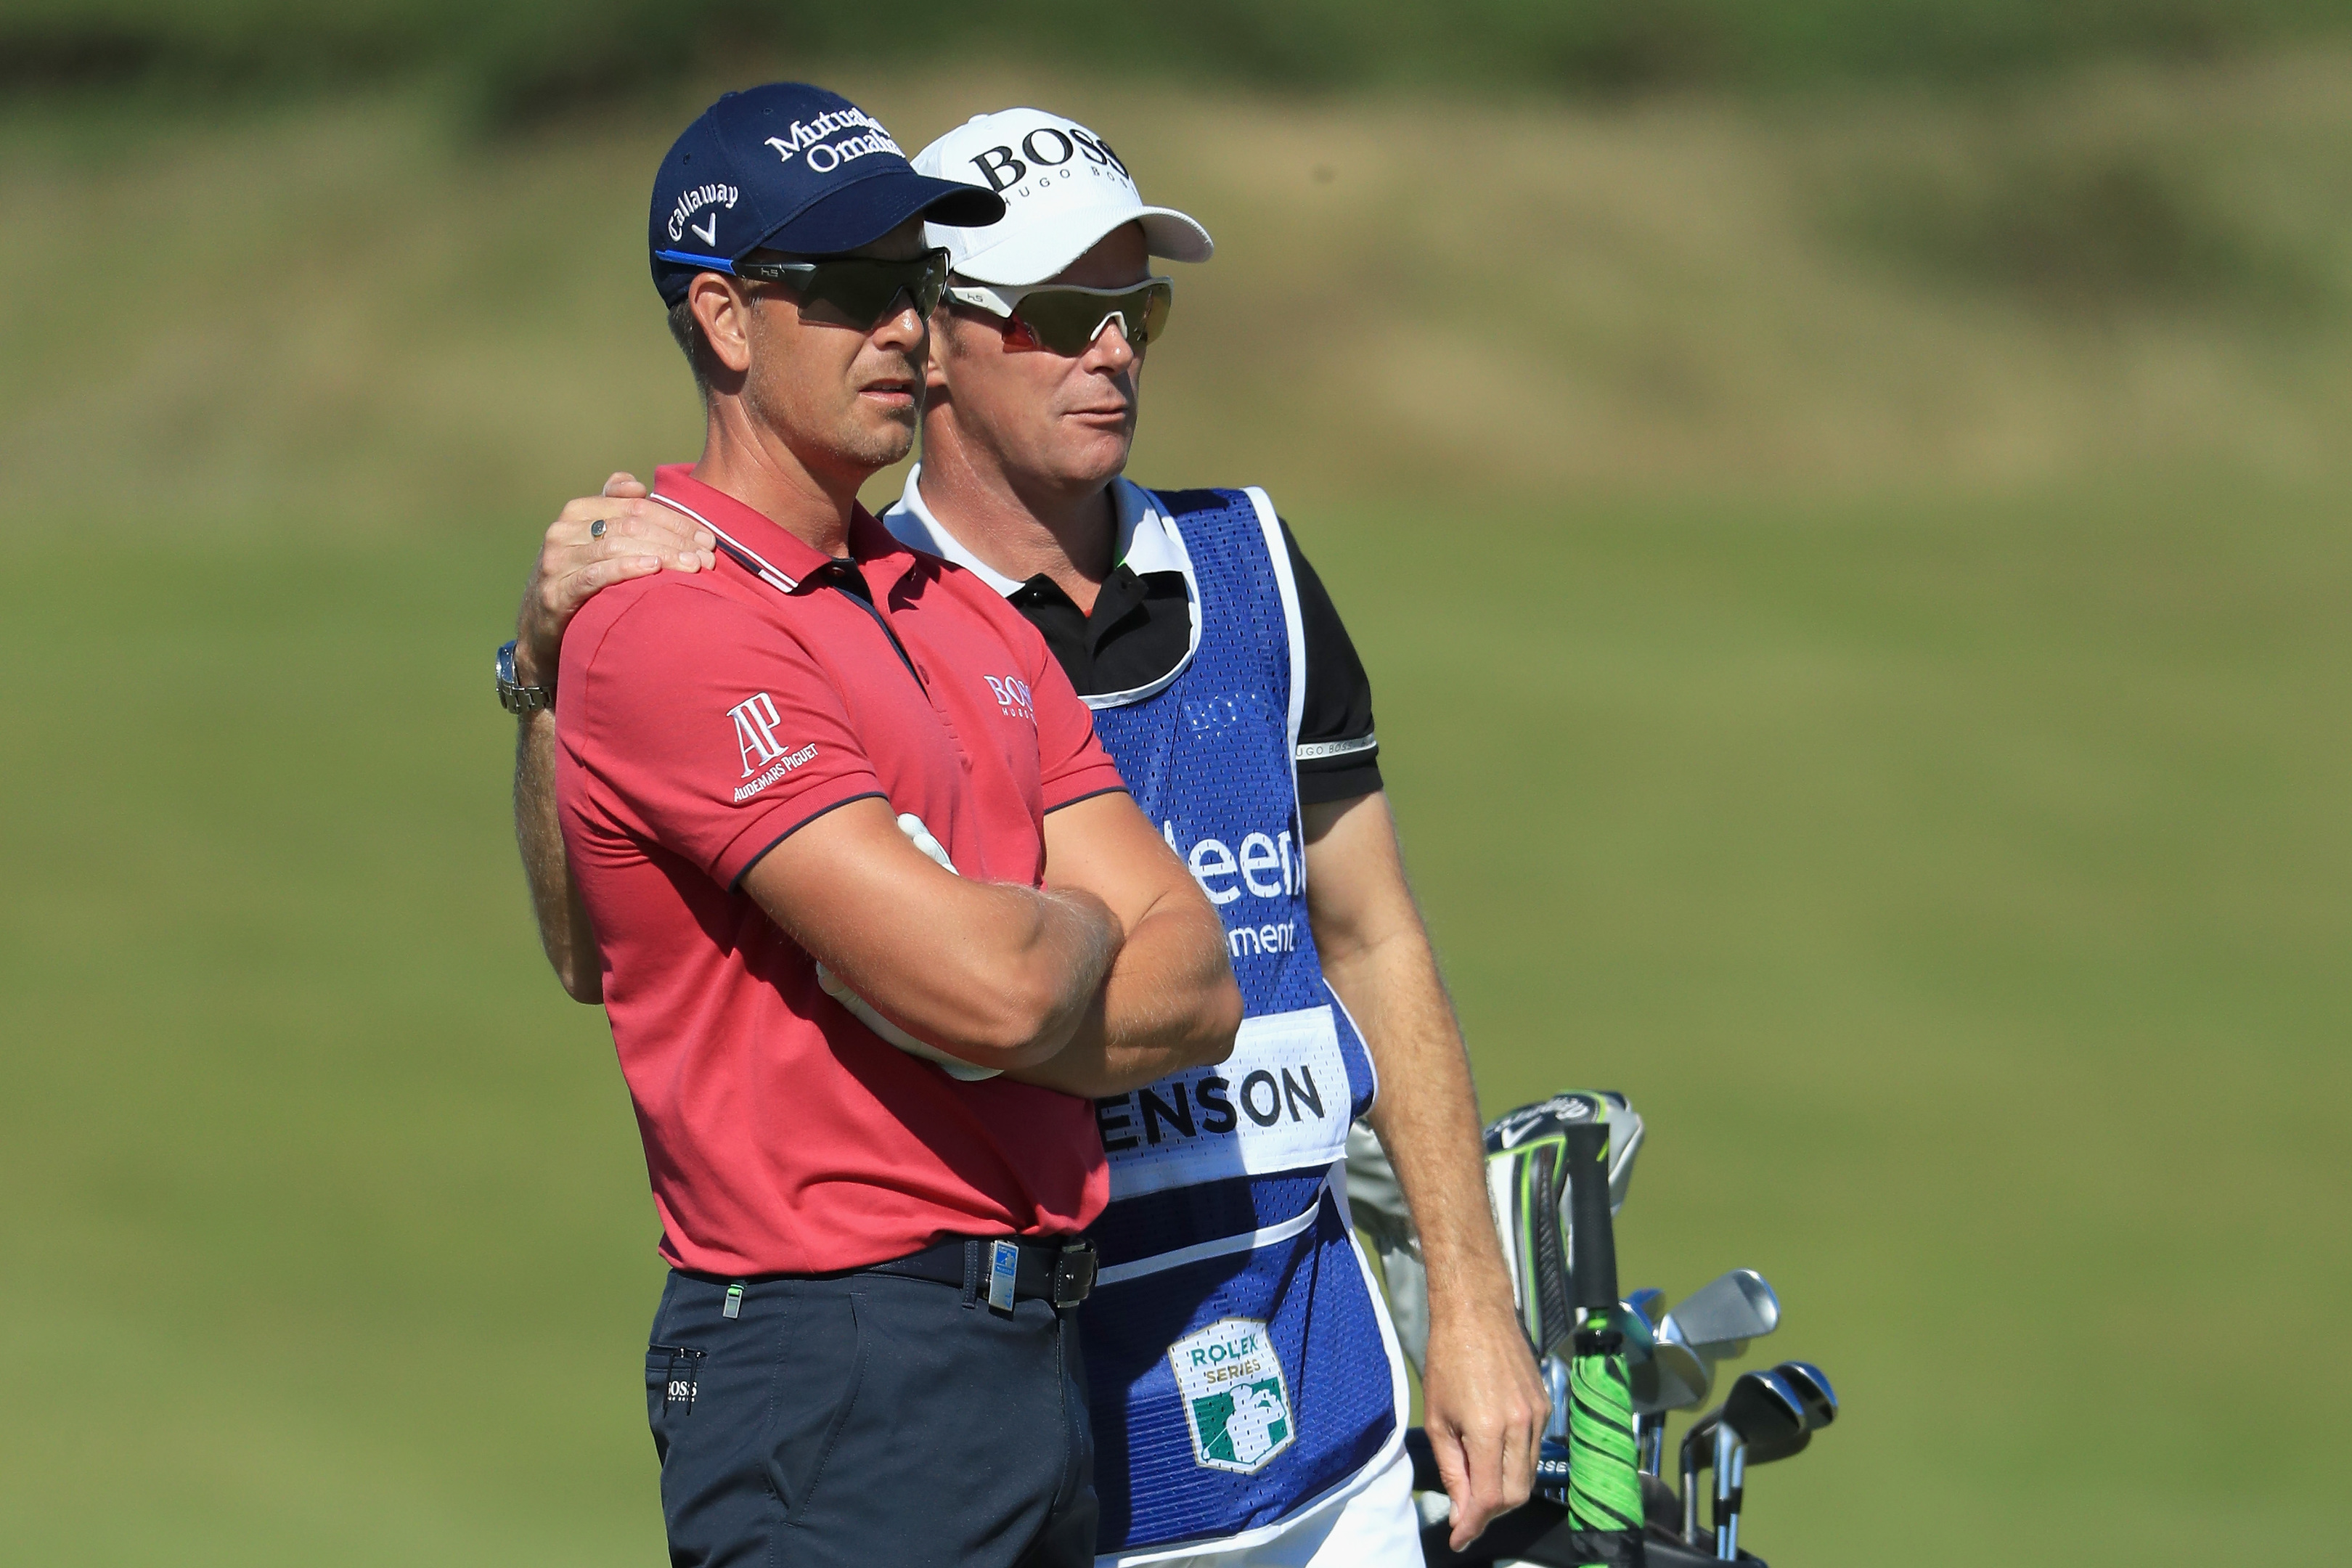 Henrik Stenson and caddie Gareth Lord during the Pro-Am at the Scottish Open.